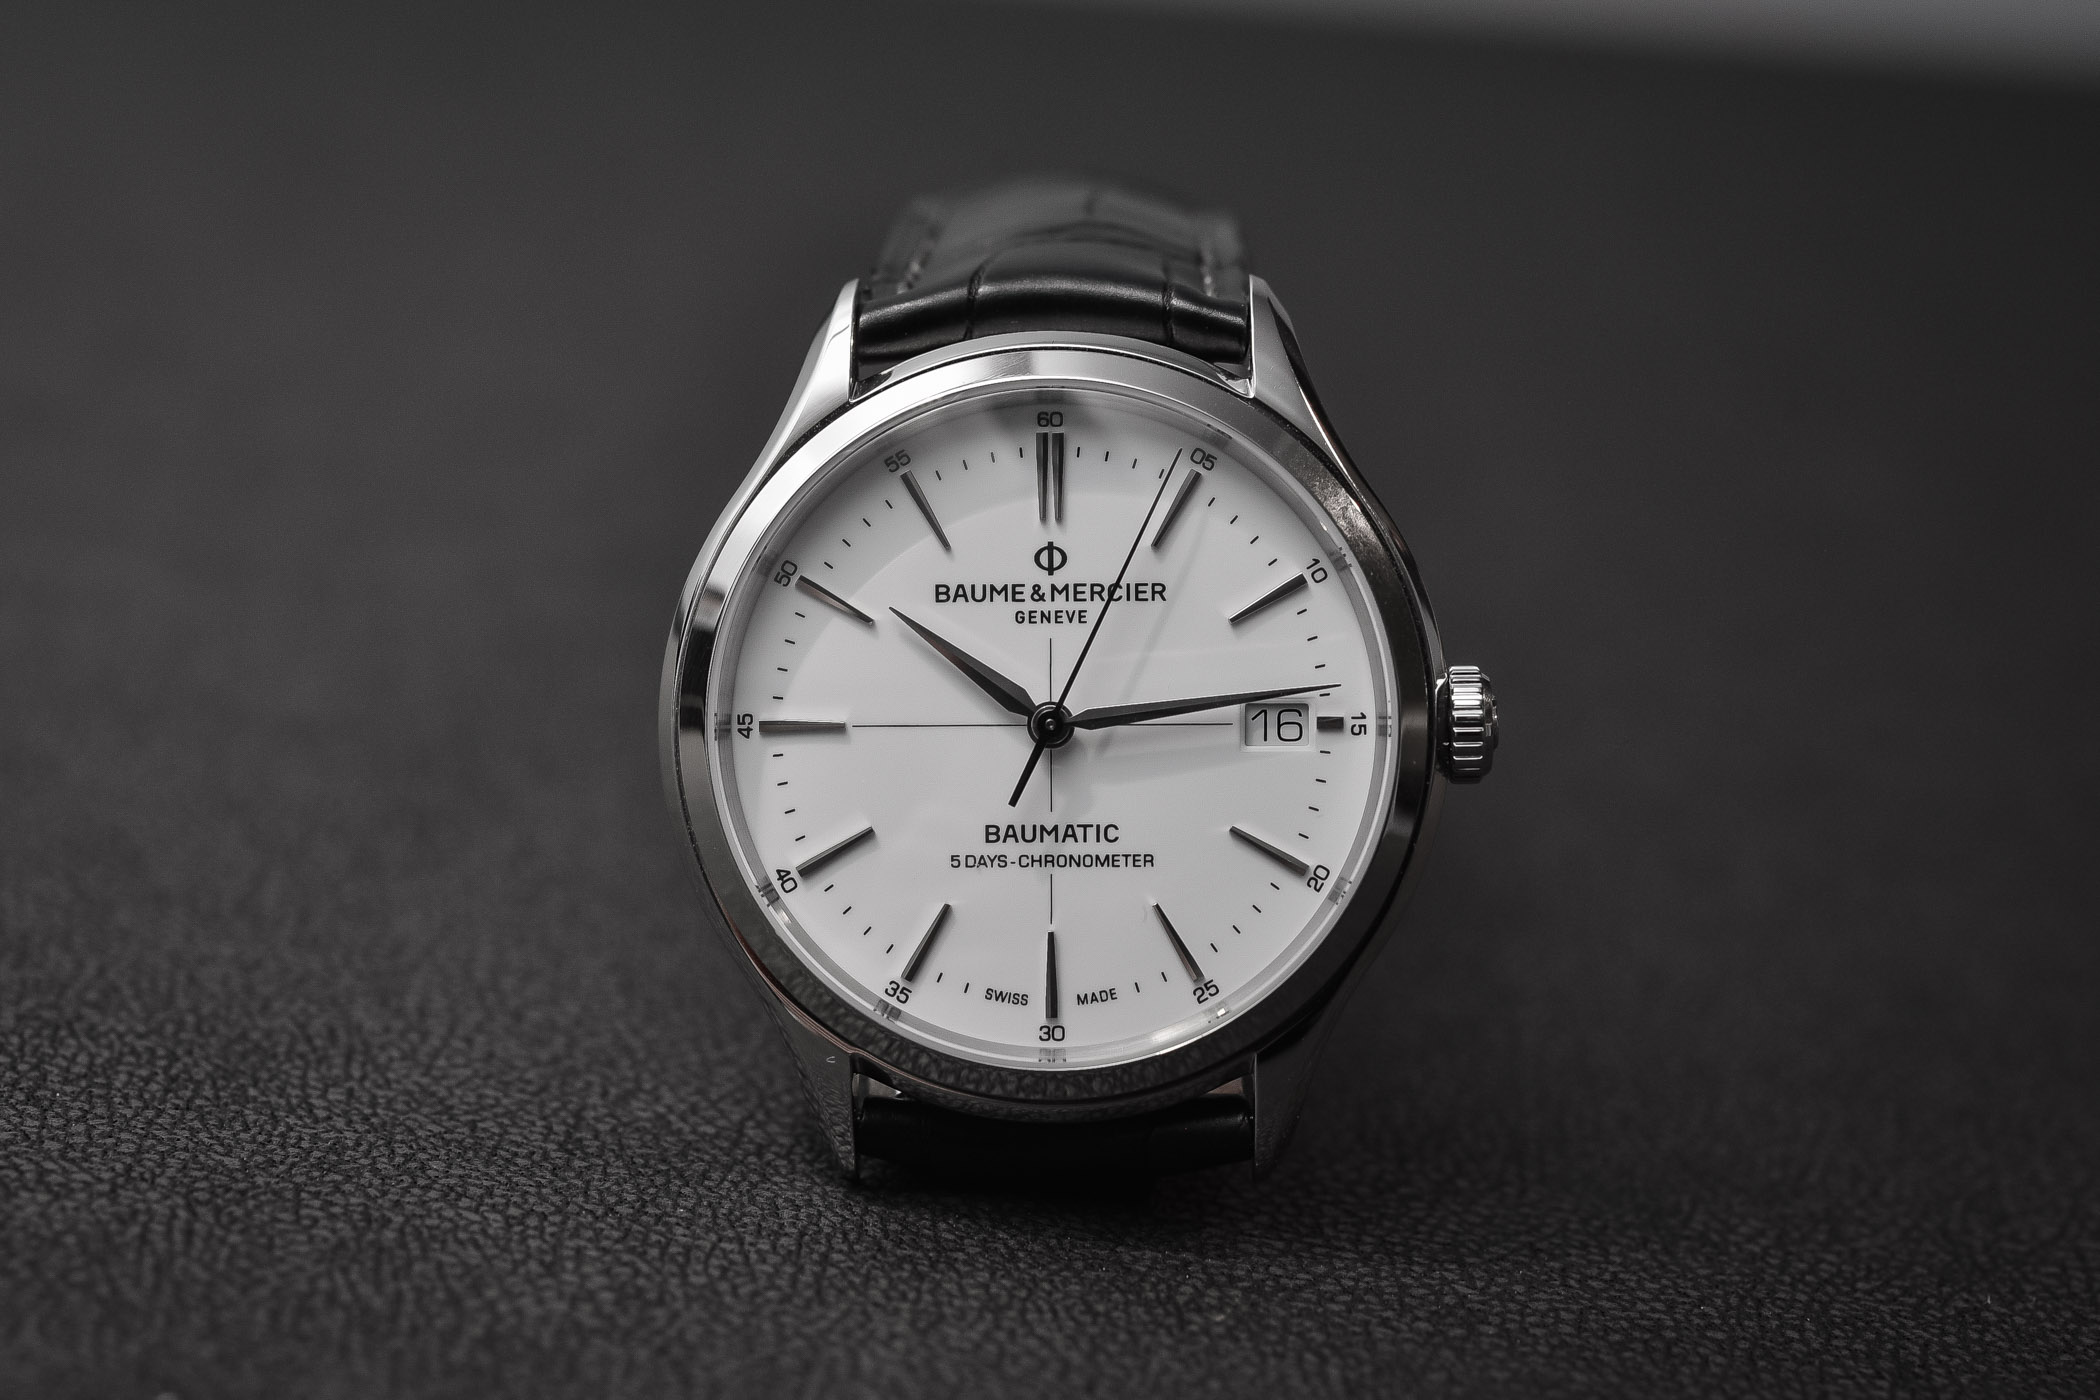 Baume Mercier Clifton Baumatic Chronometer - SIHH 2018